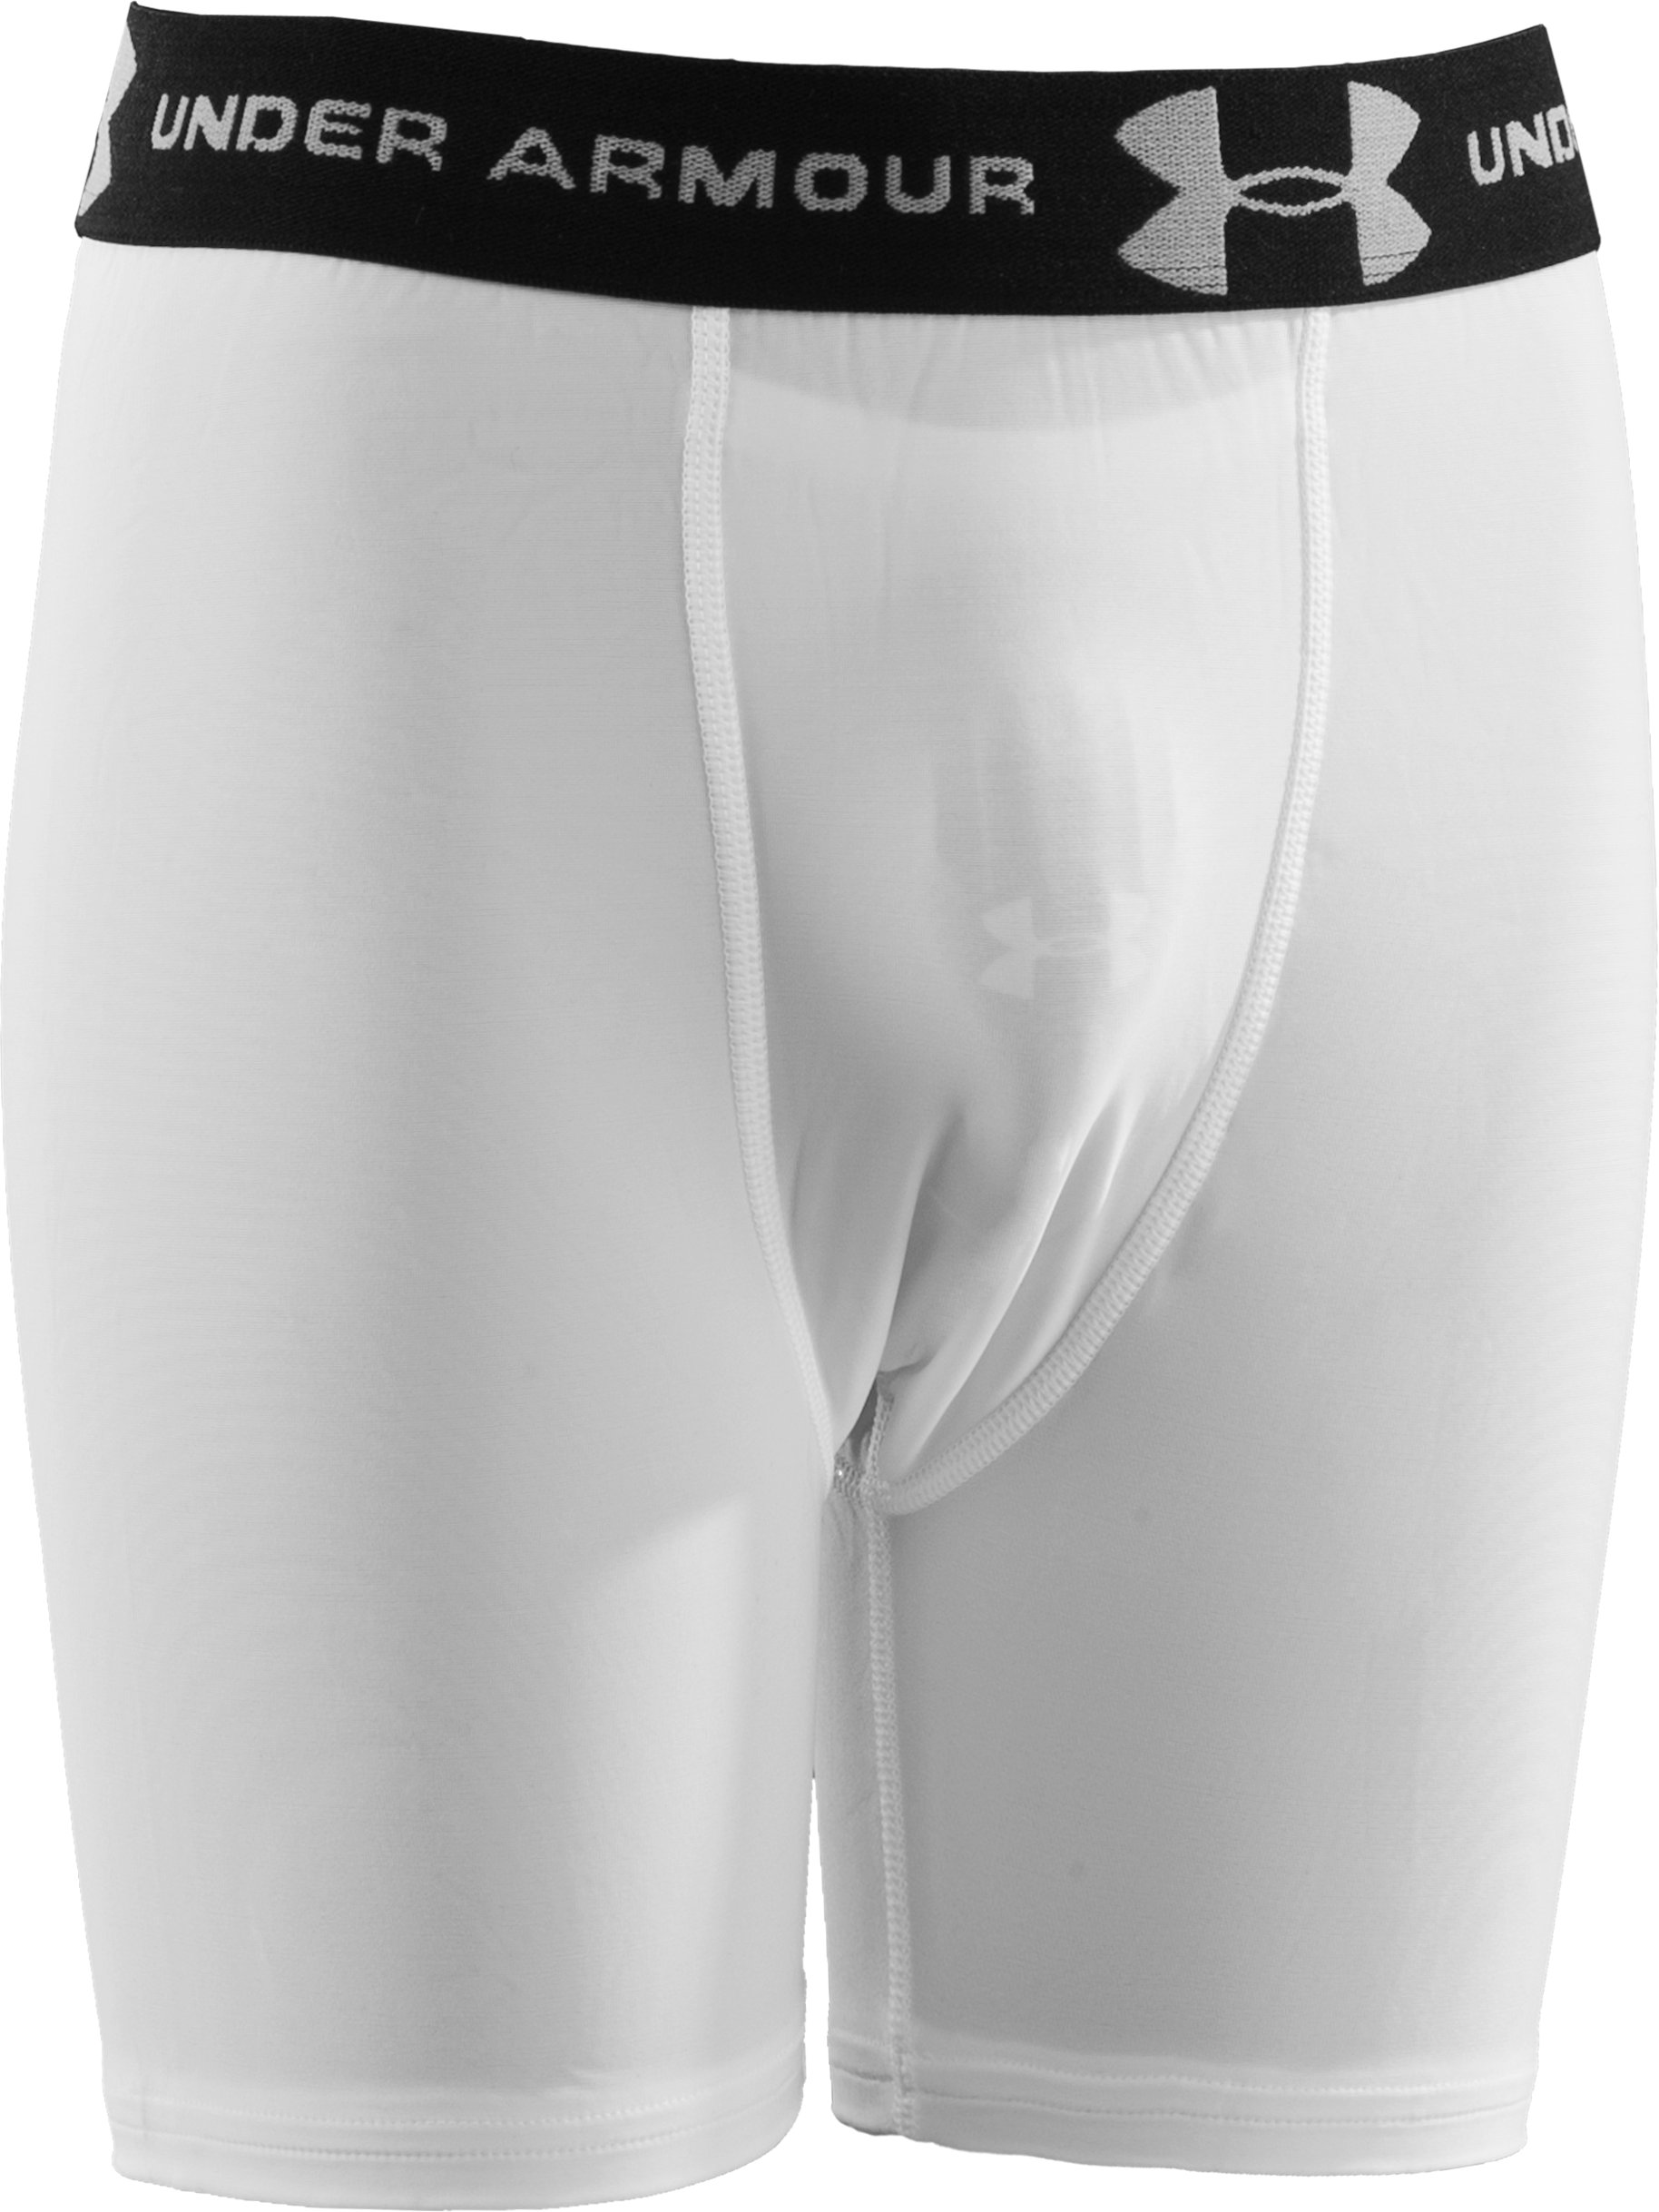 Boys' Compression Shorts with Cup, White, zoomed image